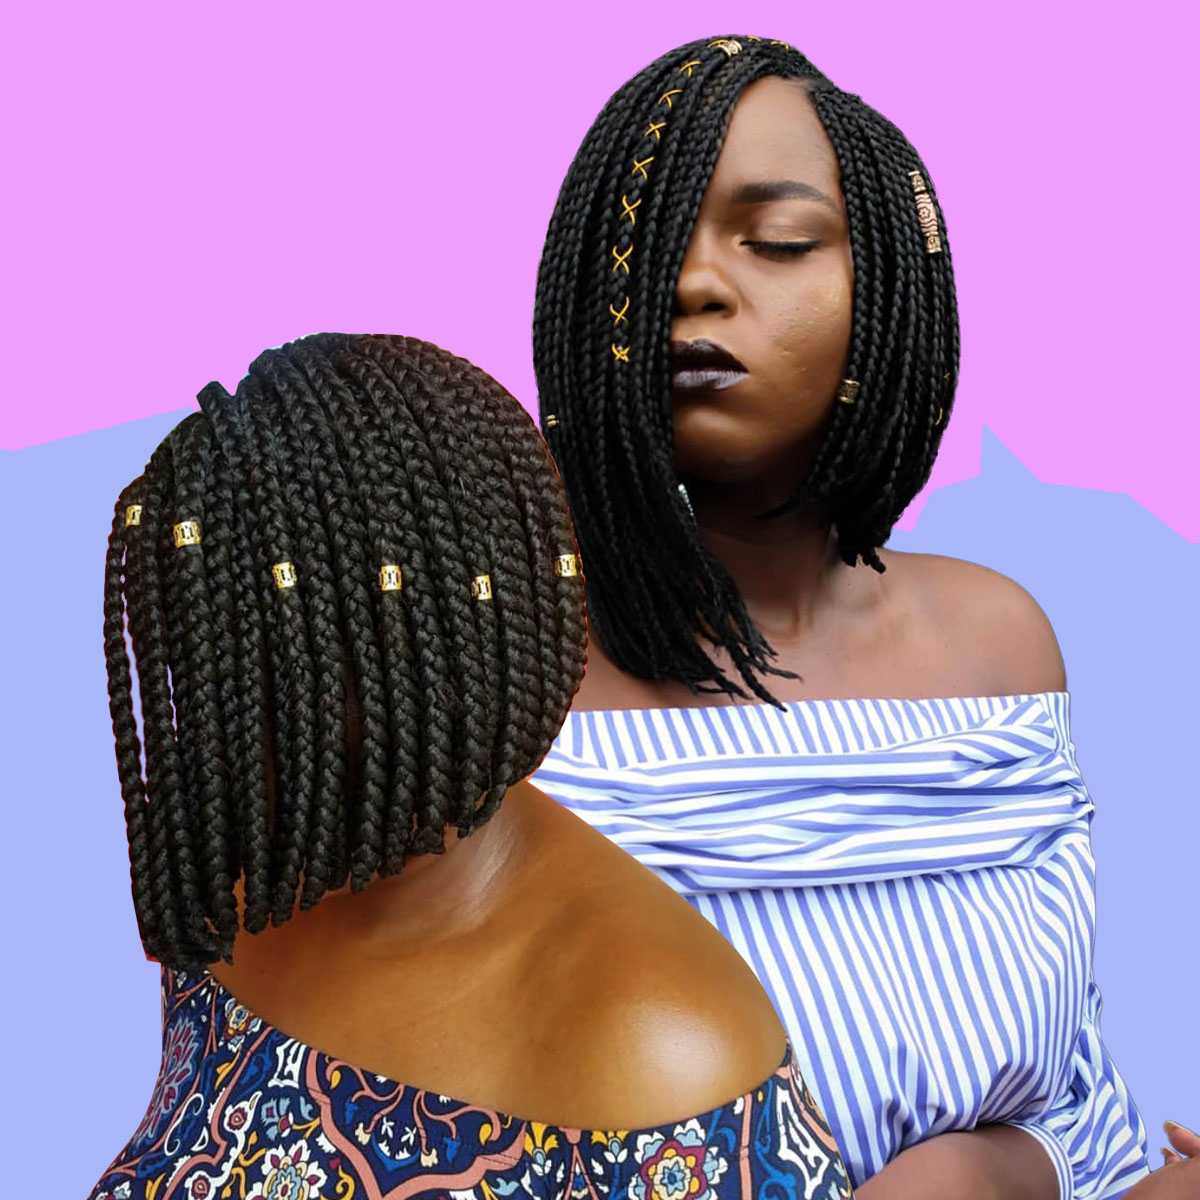 17 Beautiful Braided Bobs From Instagram You Need To Give A Try Throughout Best And Newest Angled Cornrows Hairstyles With Braided Parts (Gallery 19 of 20)